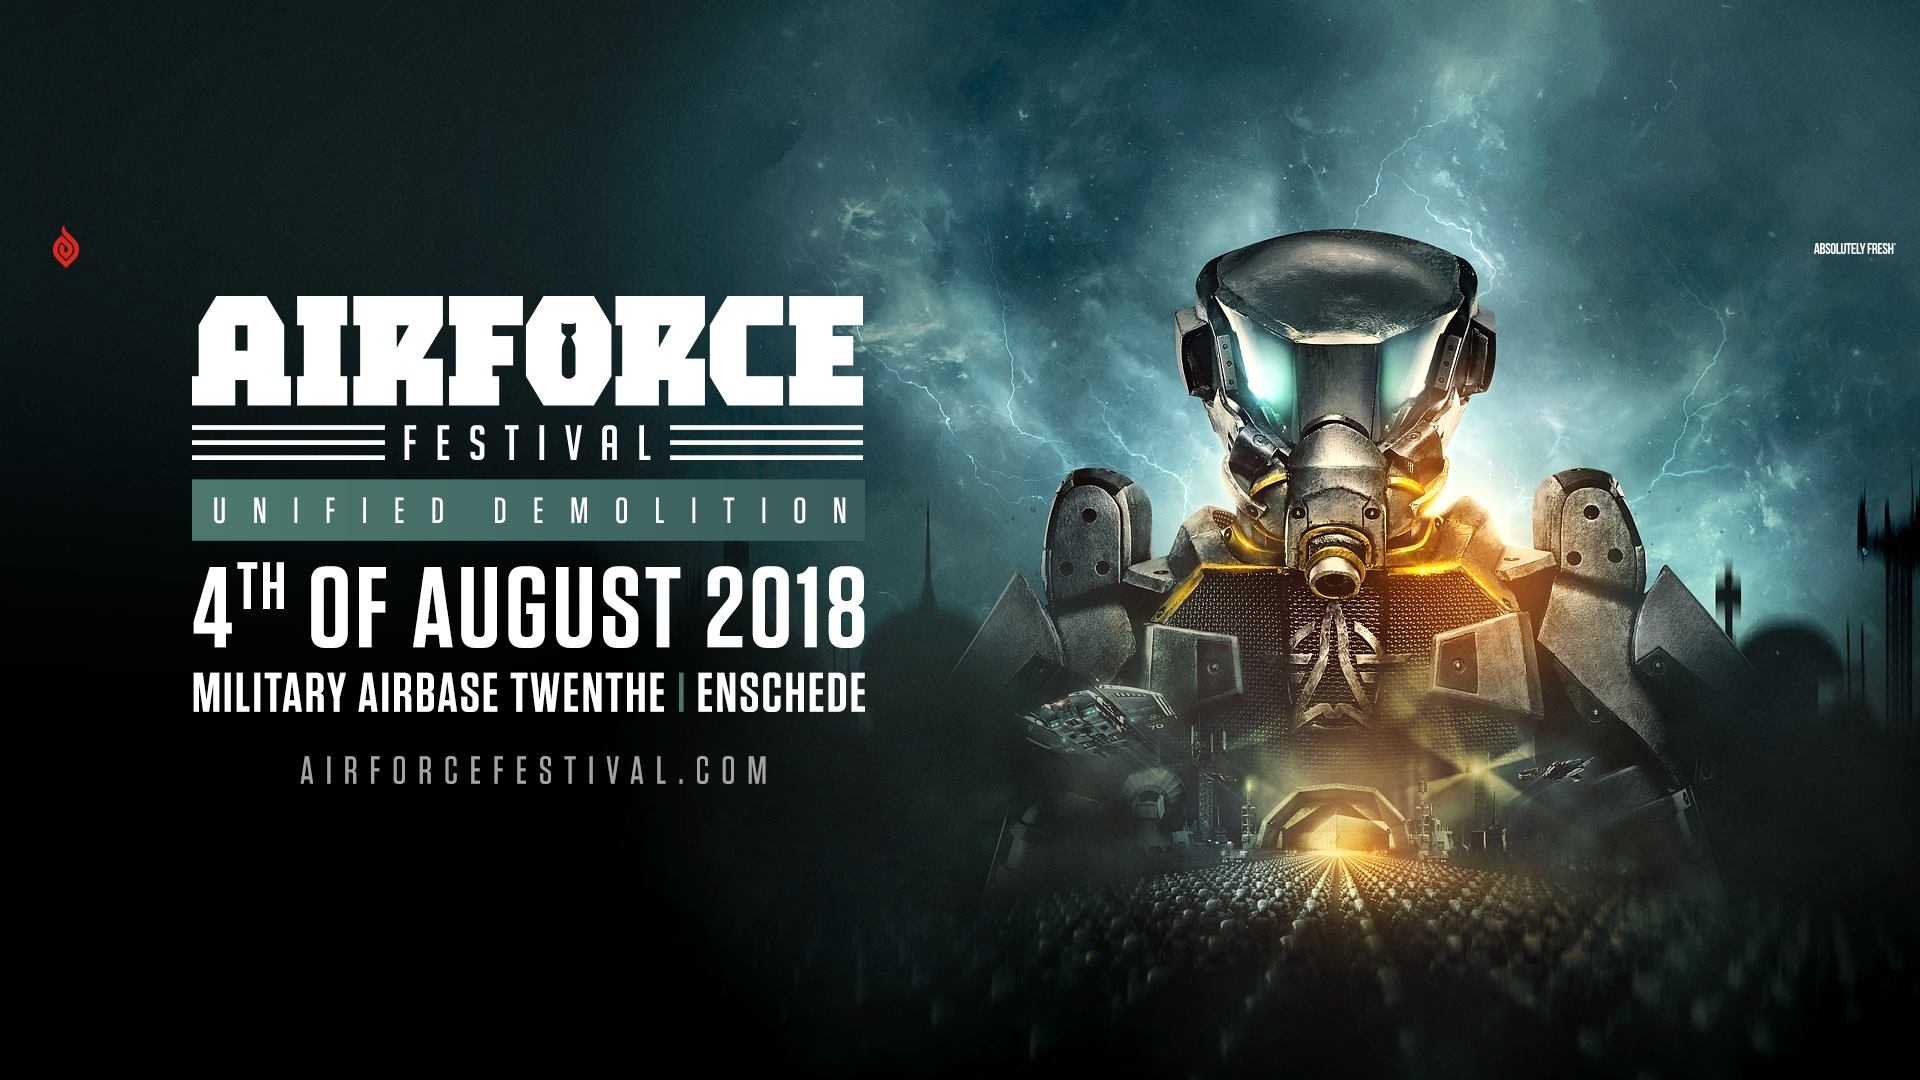 Airforce Festival 2018